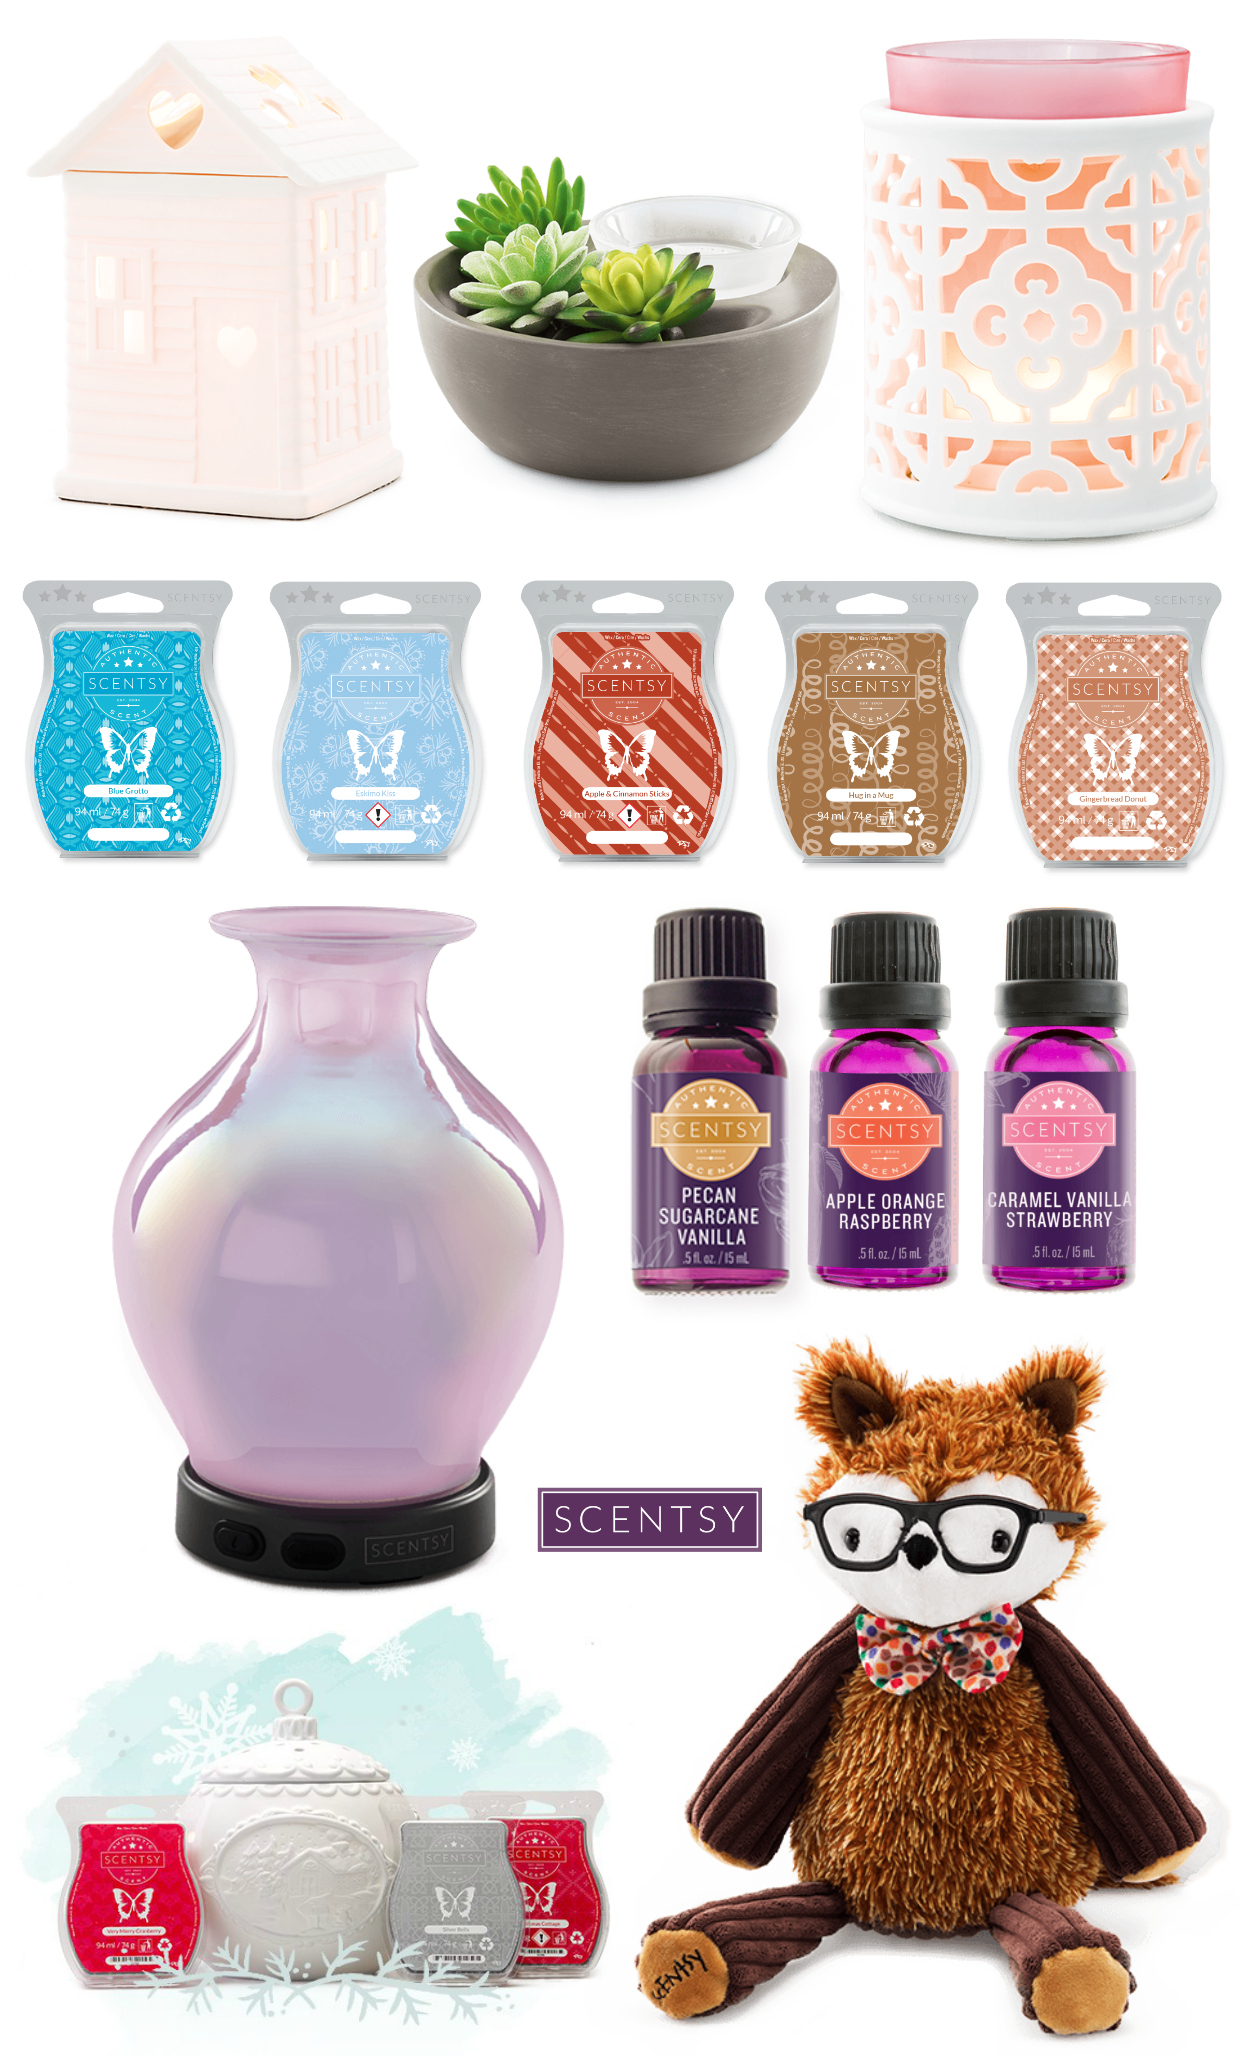 Scentsy Christmas Gifts.Christmas Gift Ideas From Scentsy Vanilla Lime